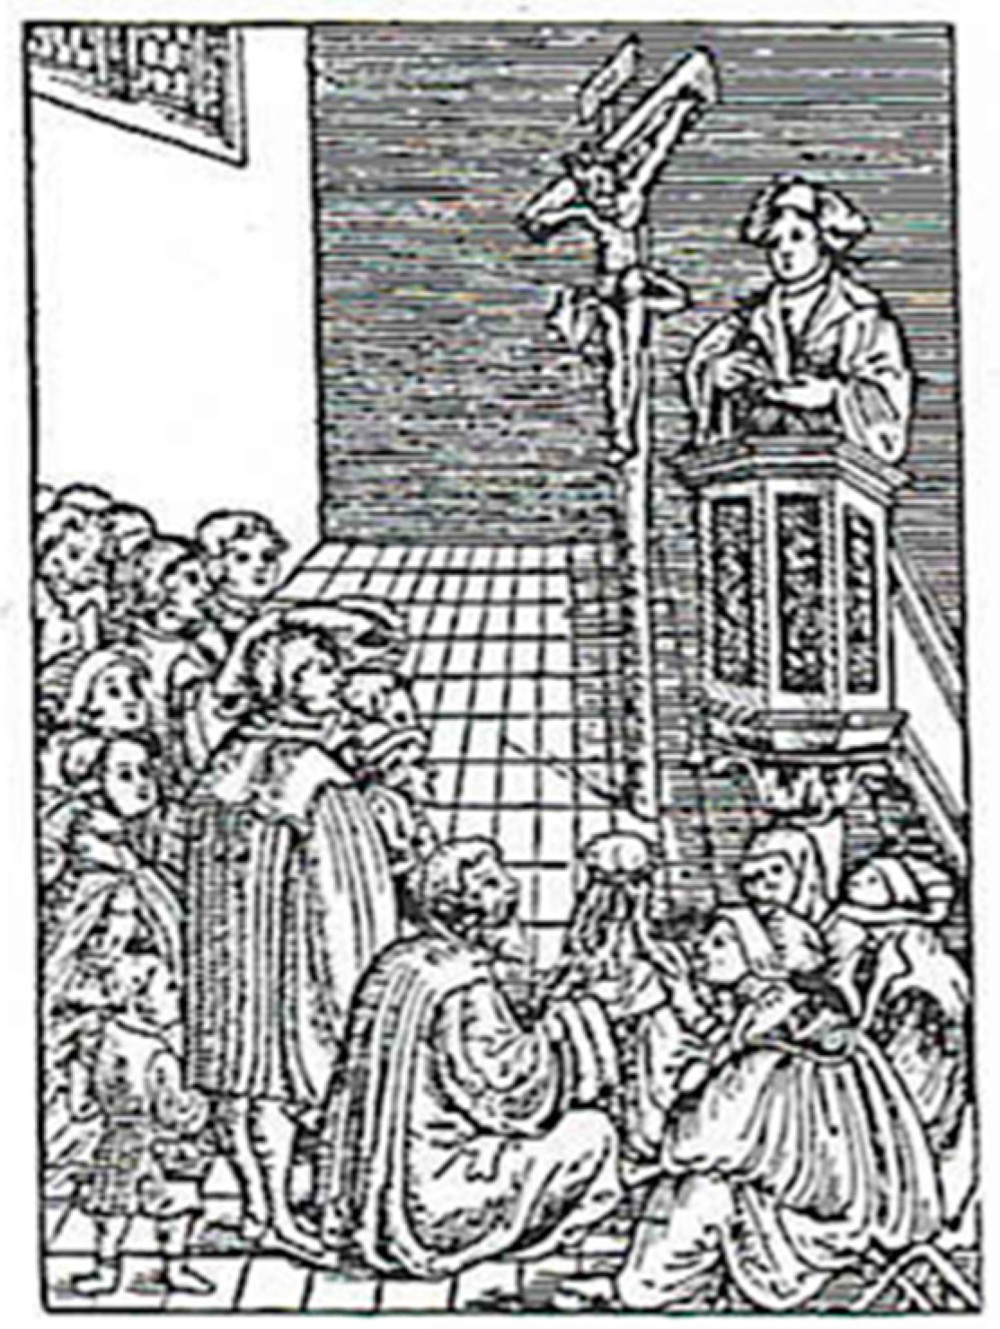 From Luther's  Small Catechism , a Cranach woodcut for the first petition of the Lord's Prayer.